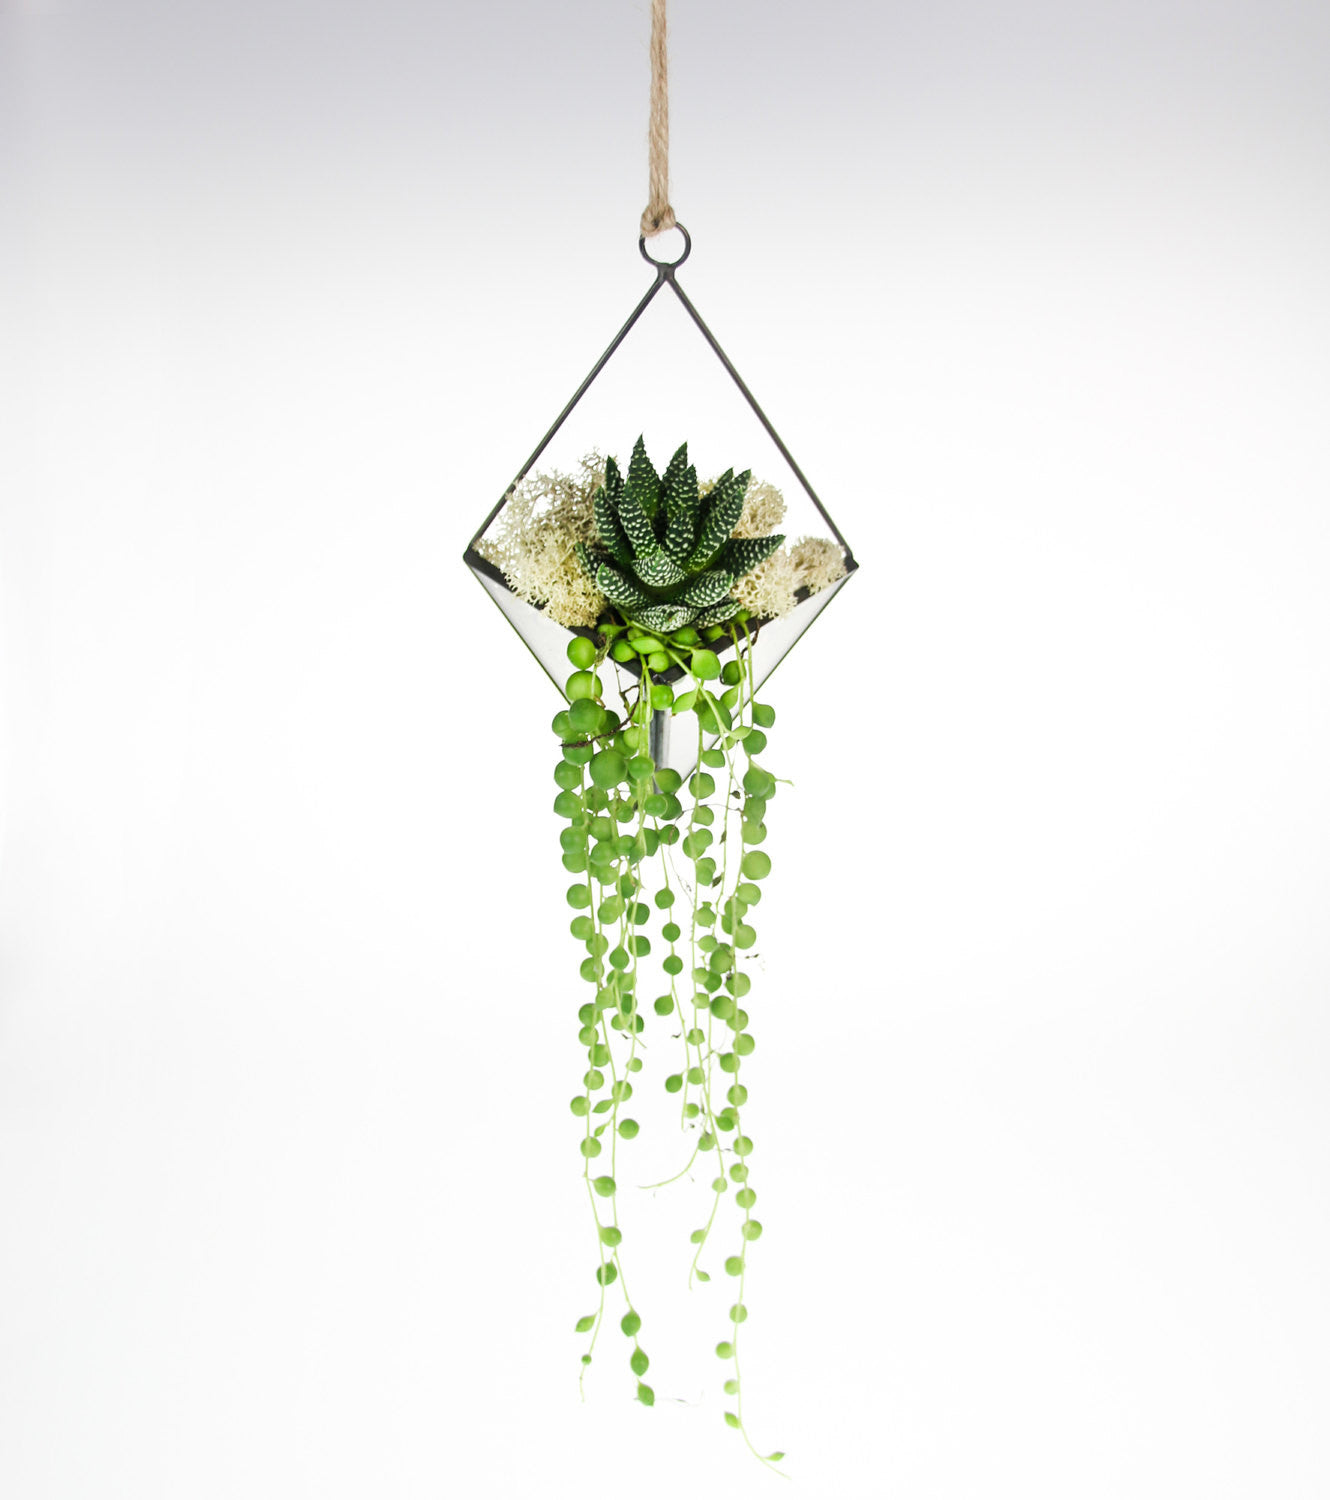 Wall Hanging Geometric Terrarium Kit In Copper And Glass With String